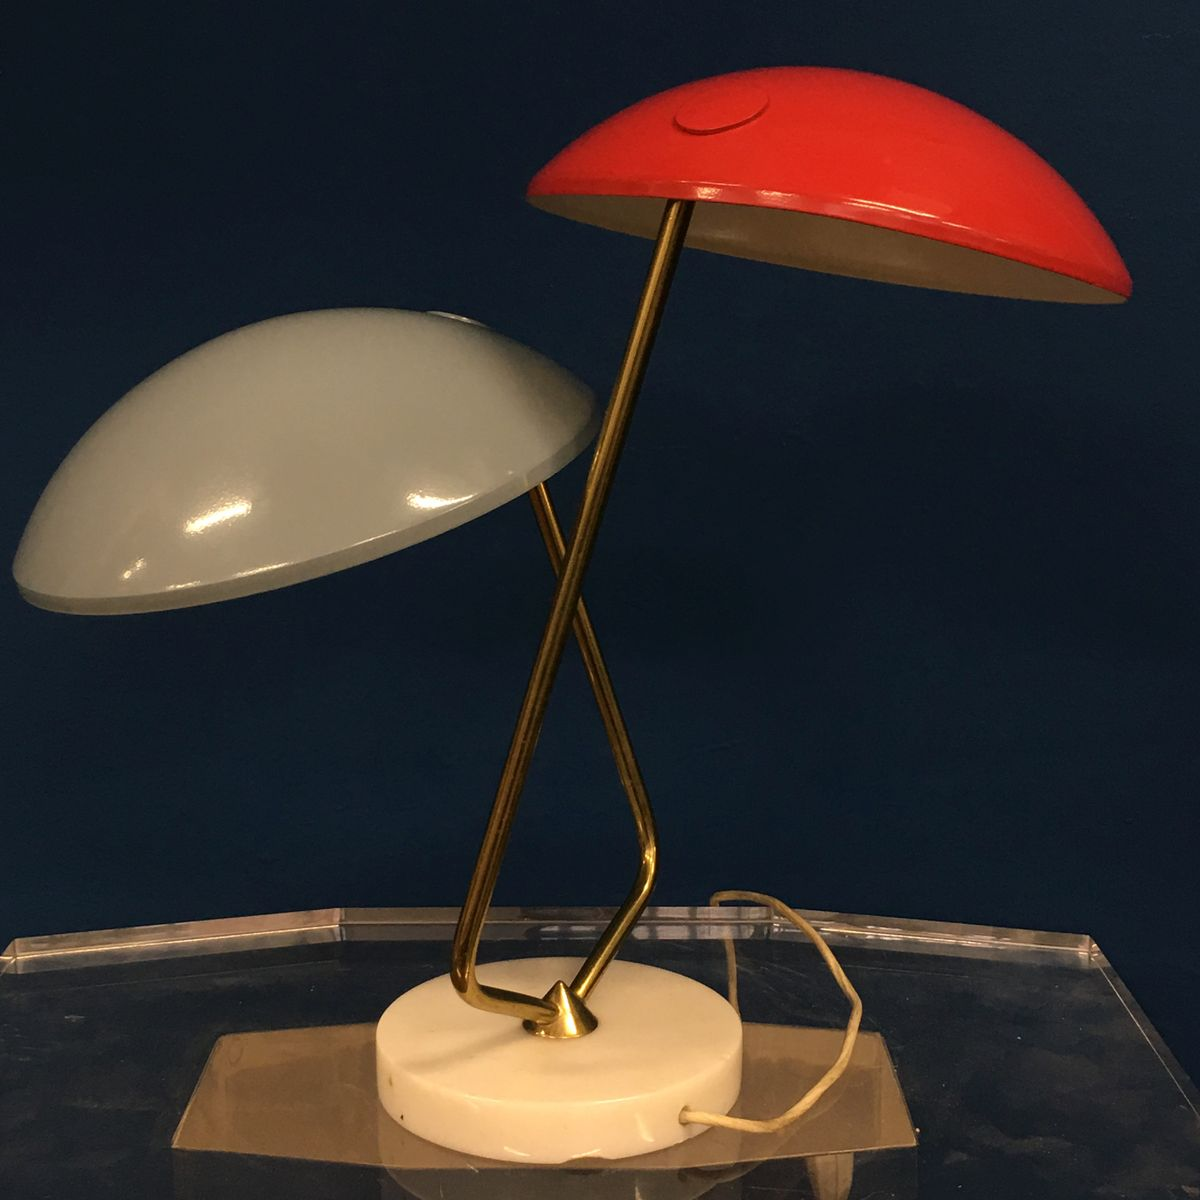 Mid century table lamp by bruno gatta for stilnovo for sale at pamono mid century table lamp by bruno gatta for stilnovo mozeypictures Choice Image